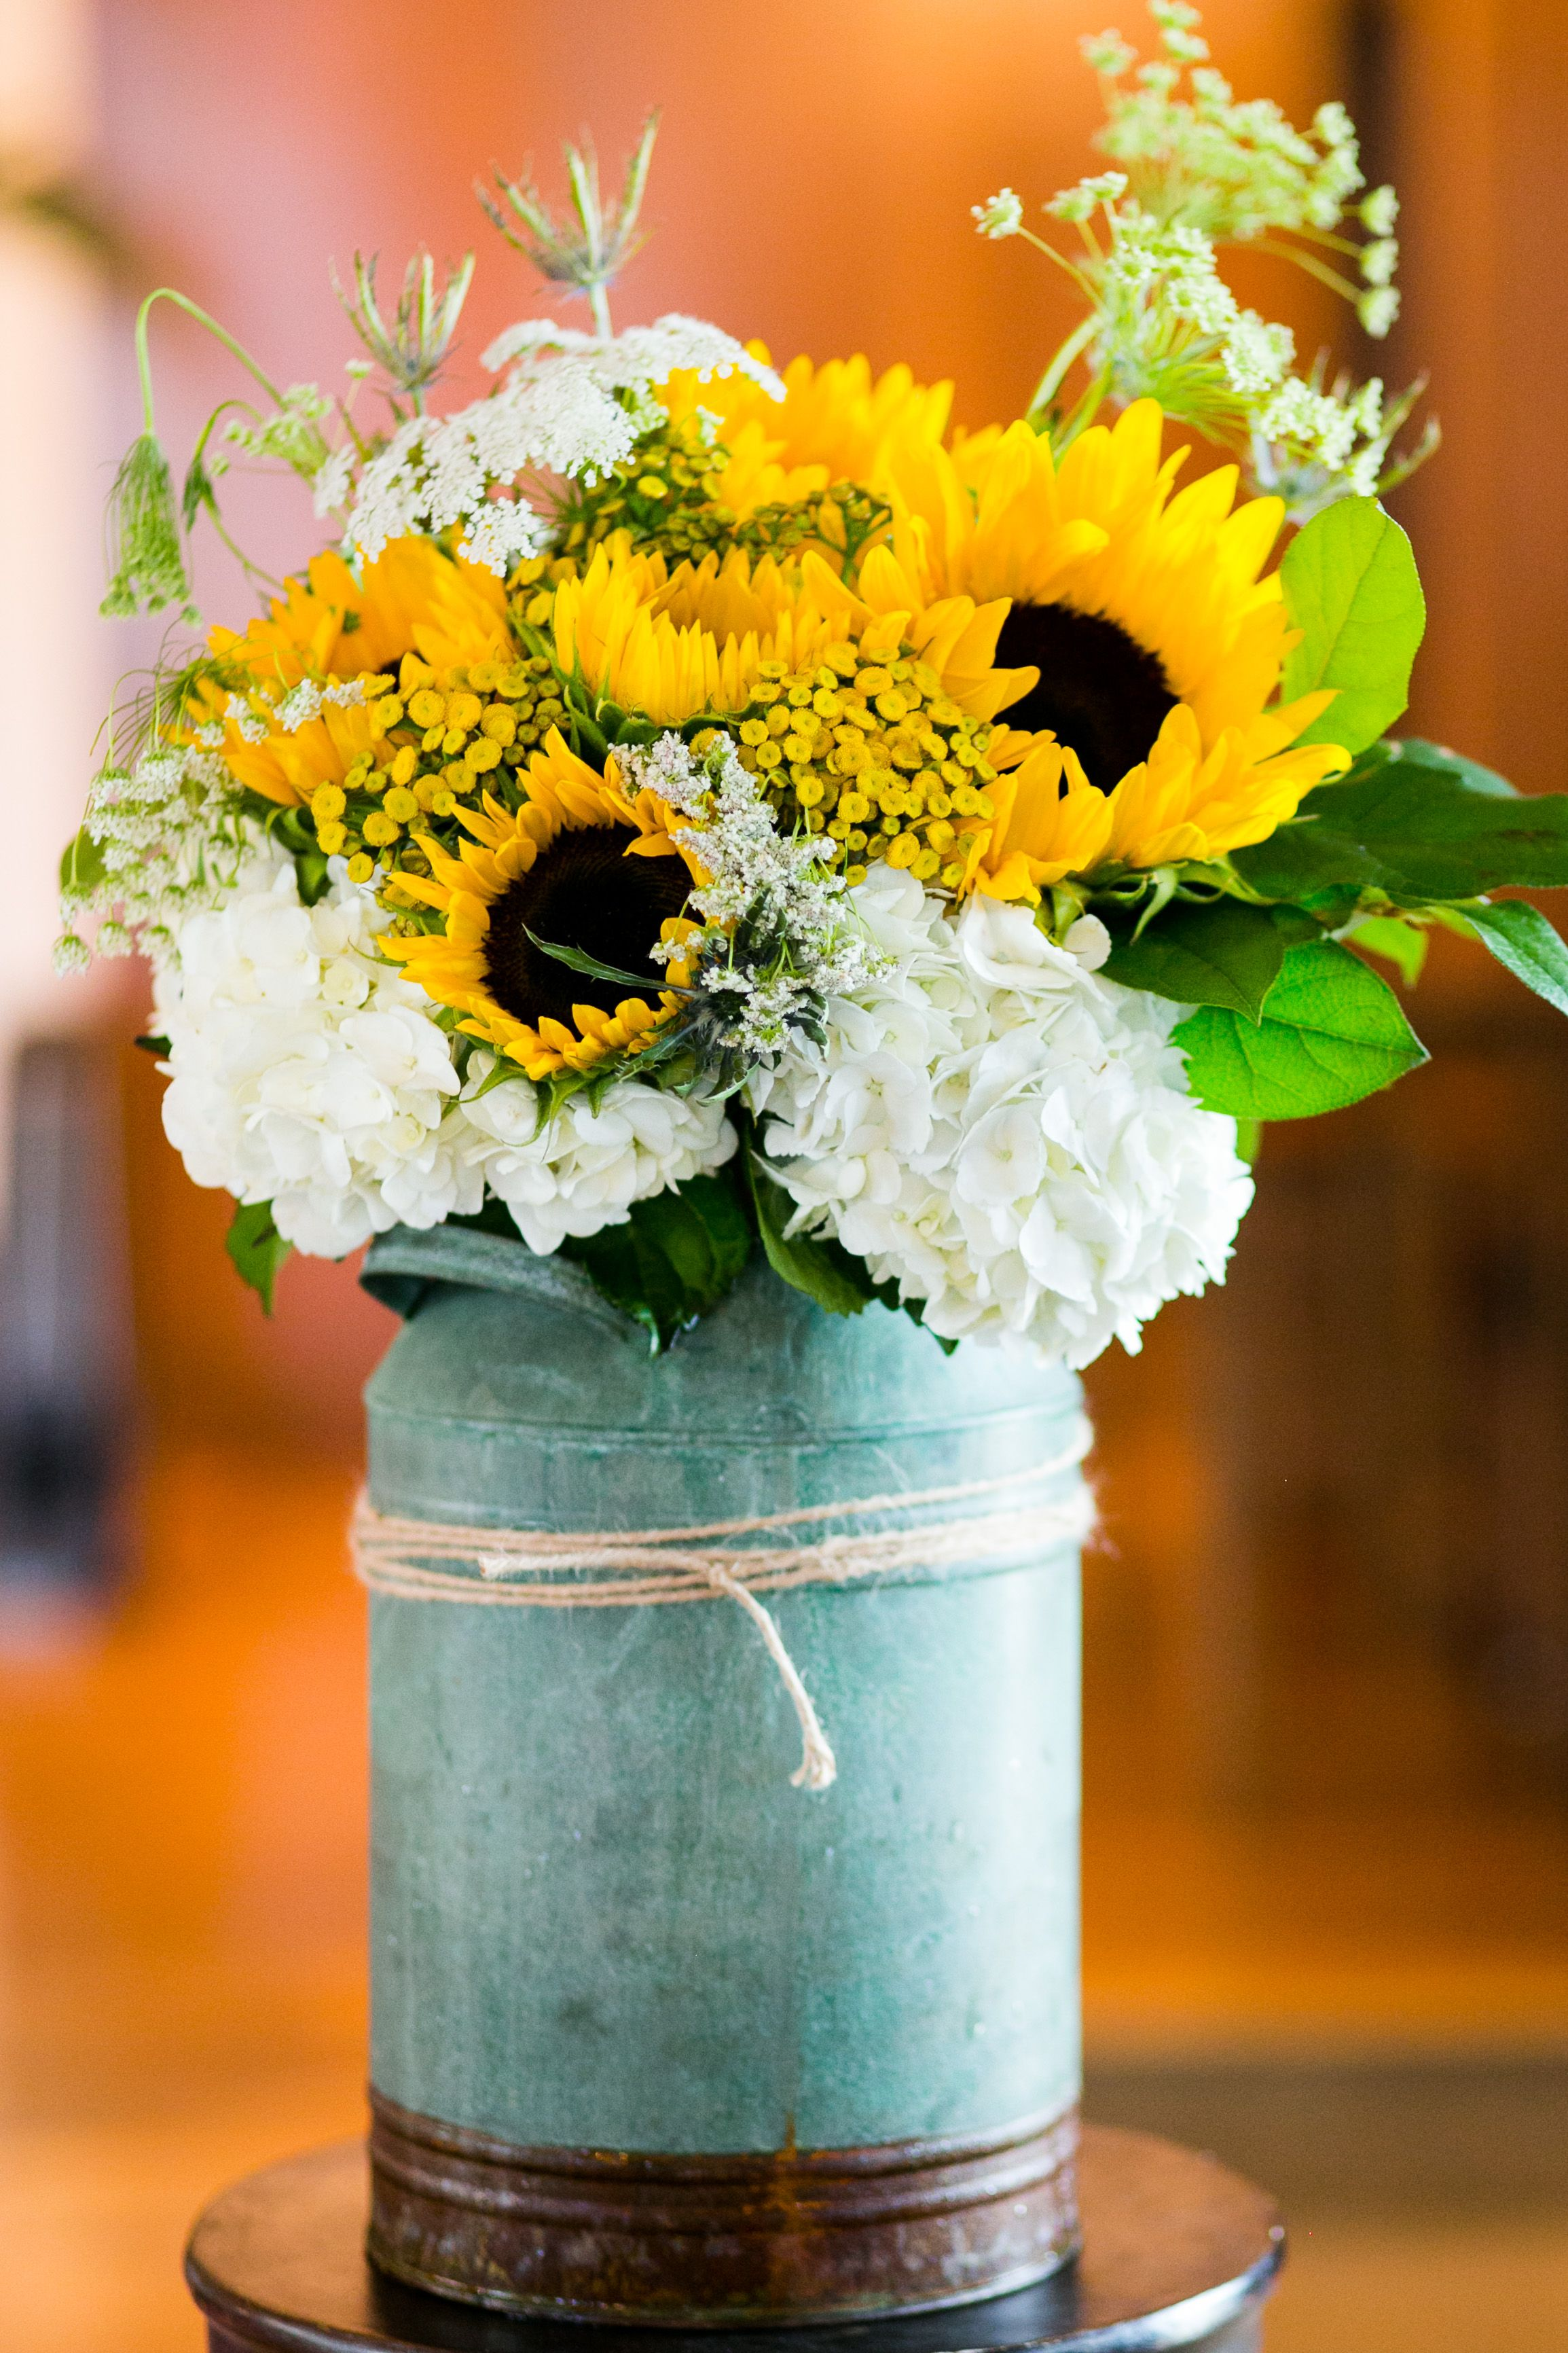 A Loosely Constructed Arrangement Of White Hydrangea, Yellow Sunflowers, Yarrow,